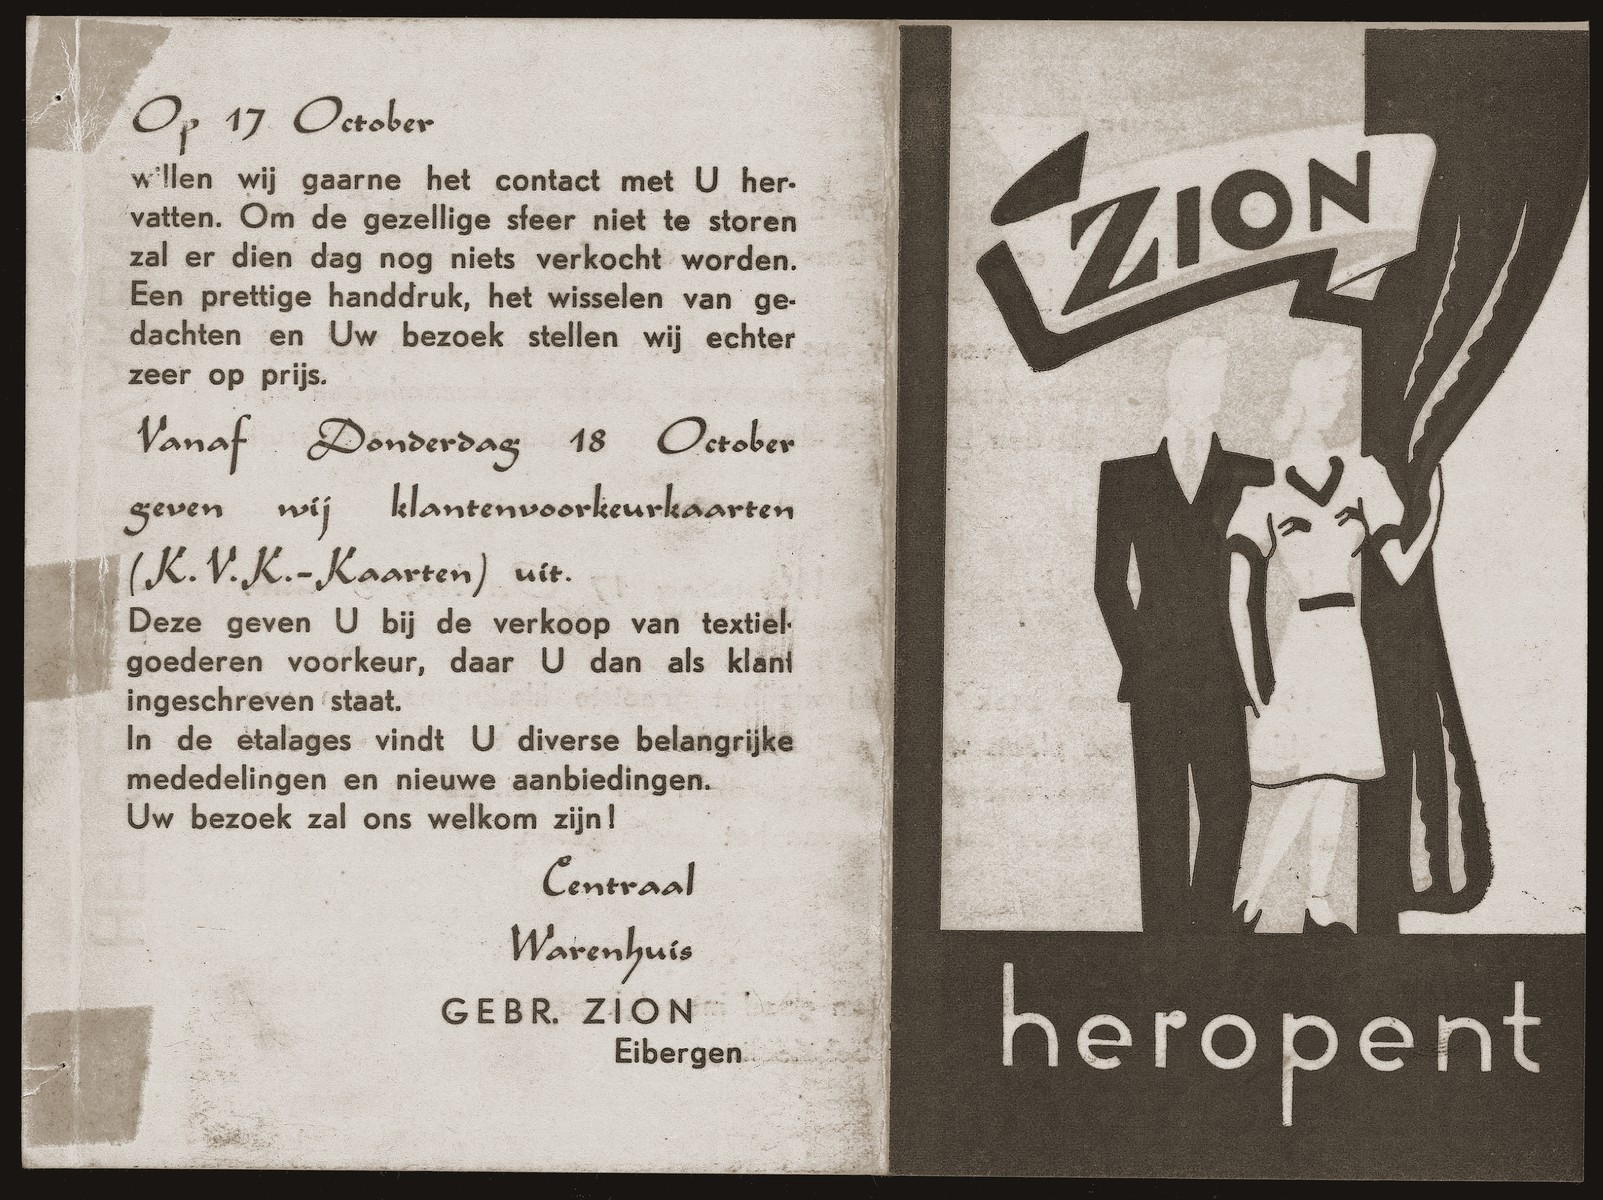 Invitation to the reopening of the Zion clothing and fabric store in Eibergen, which includes a brief account of its history during the war.